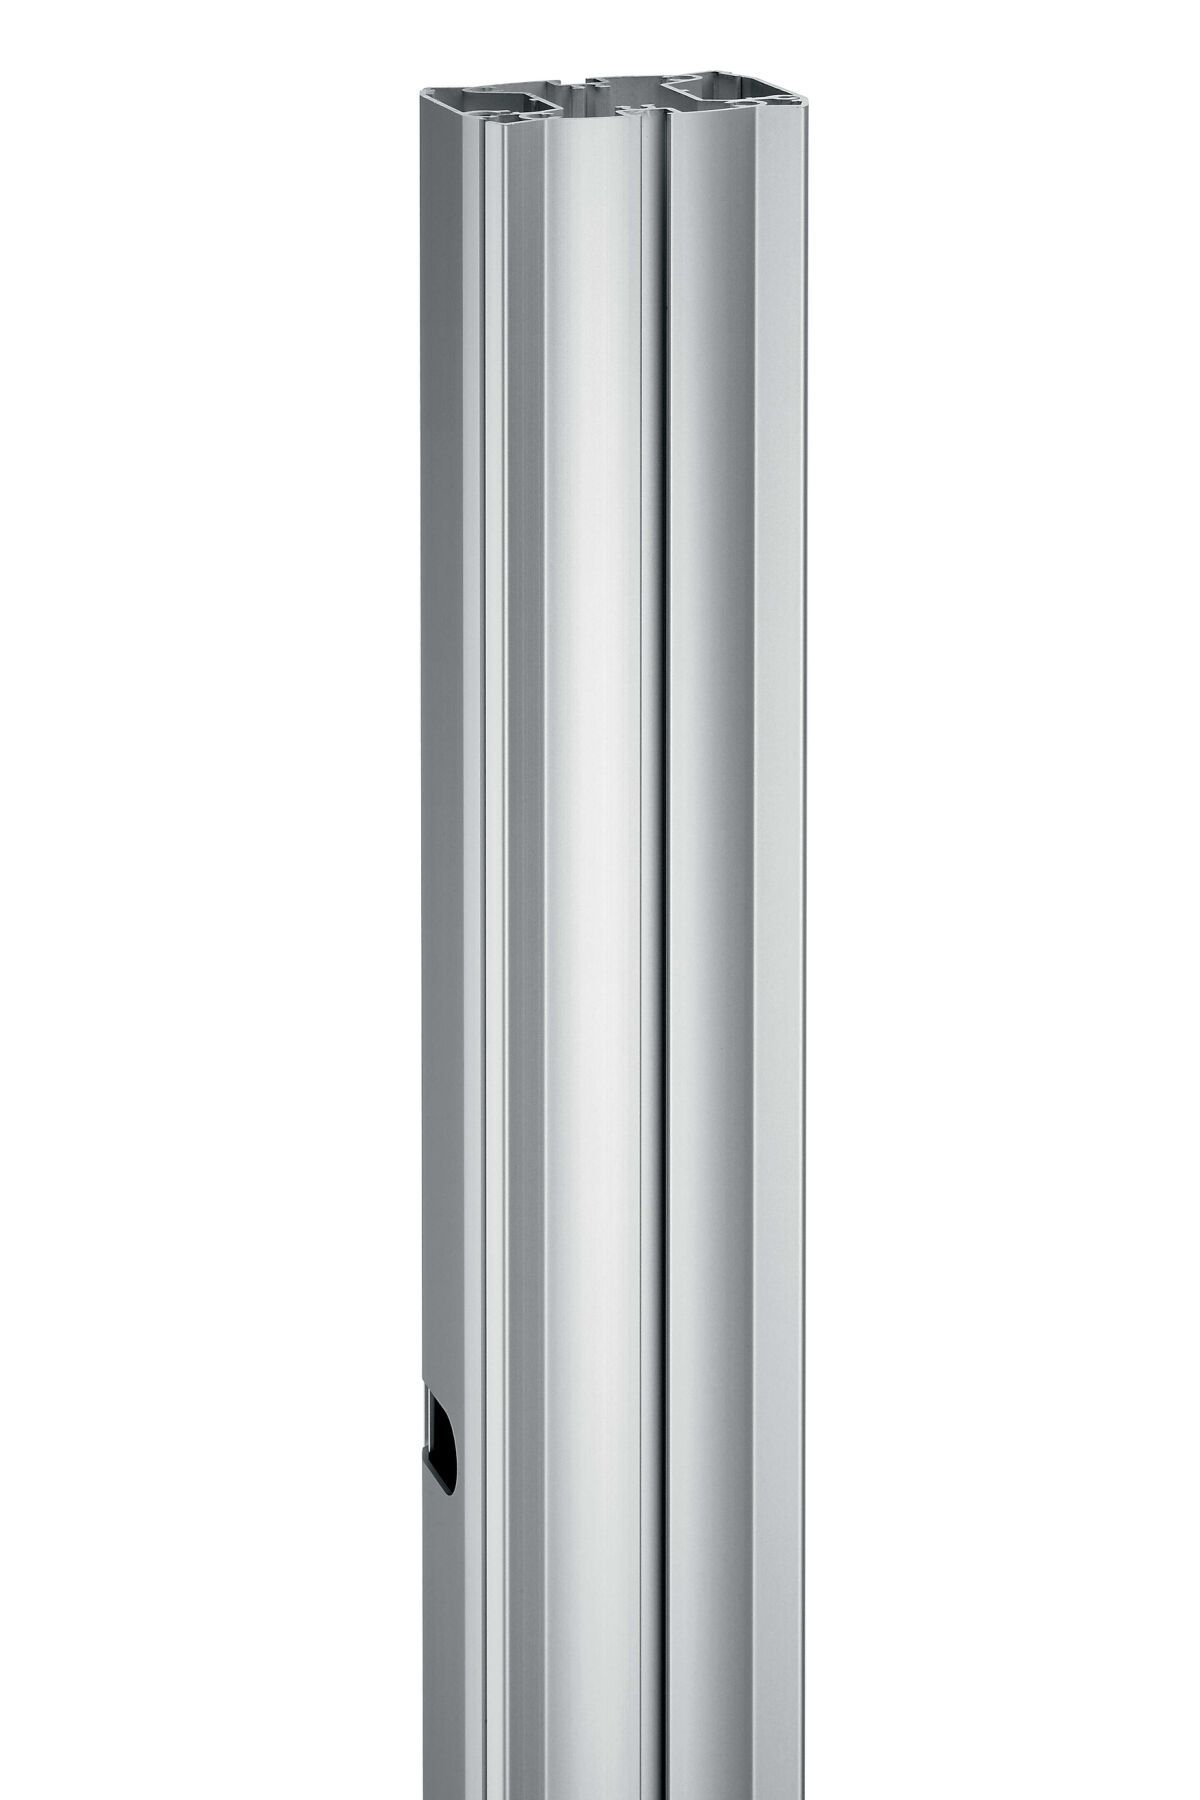 Vogel's PUC 2720 Pole silver - Product